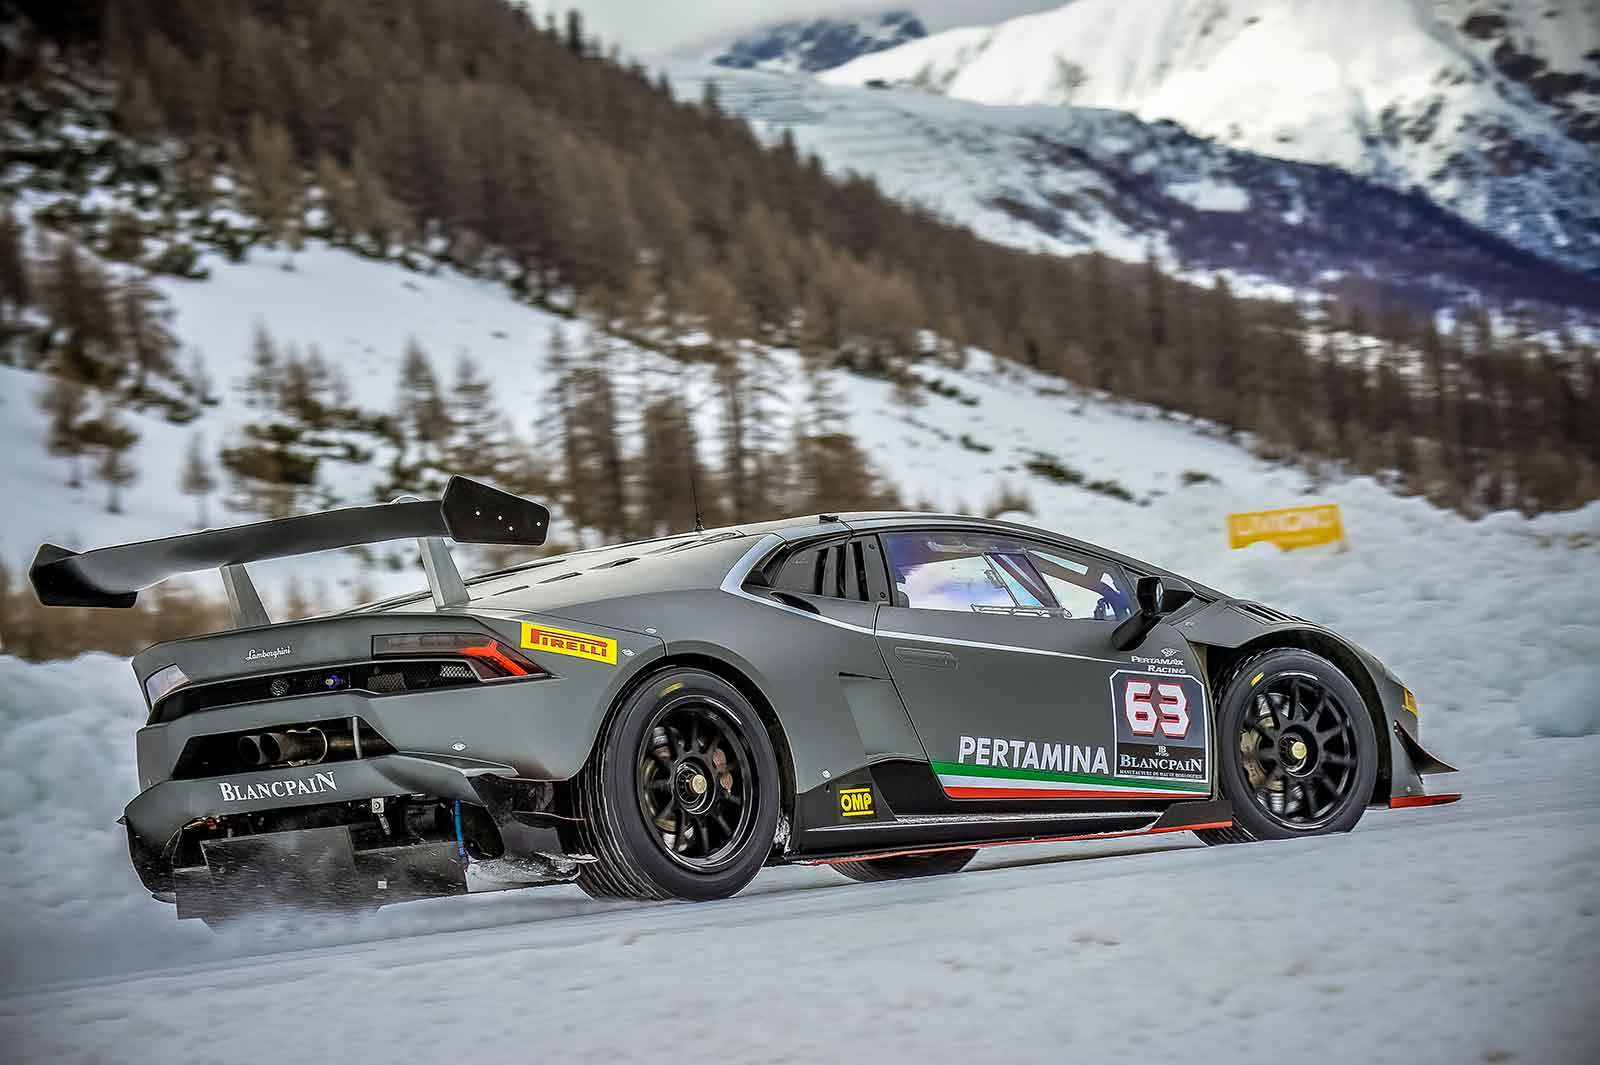 Driving the Lamborghini Huracán LP-620-2 Super Trofeo racecar in the snow.